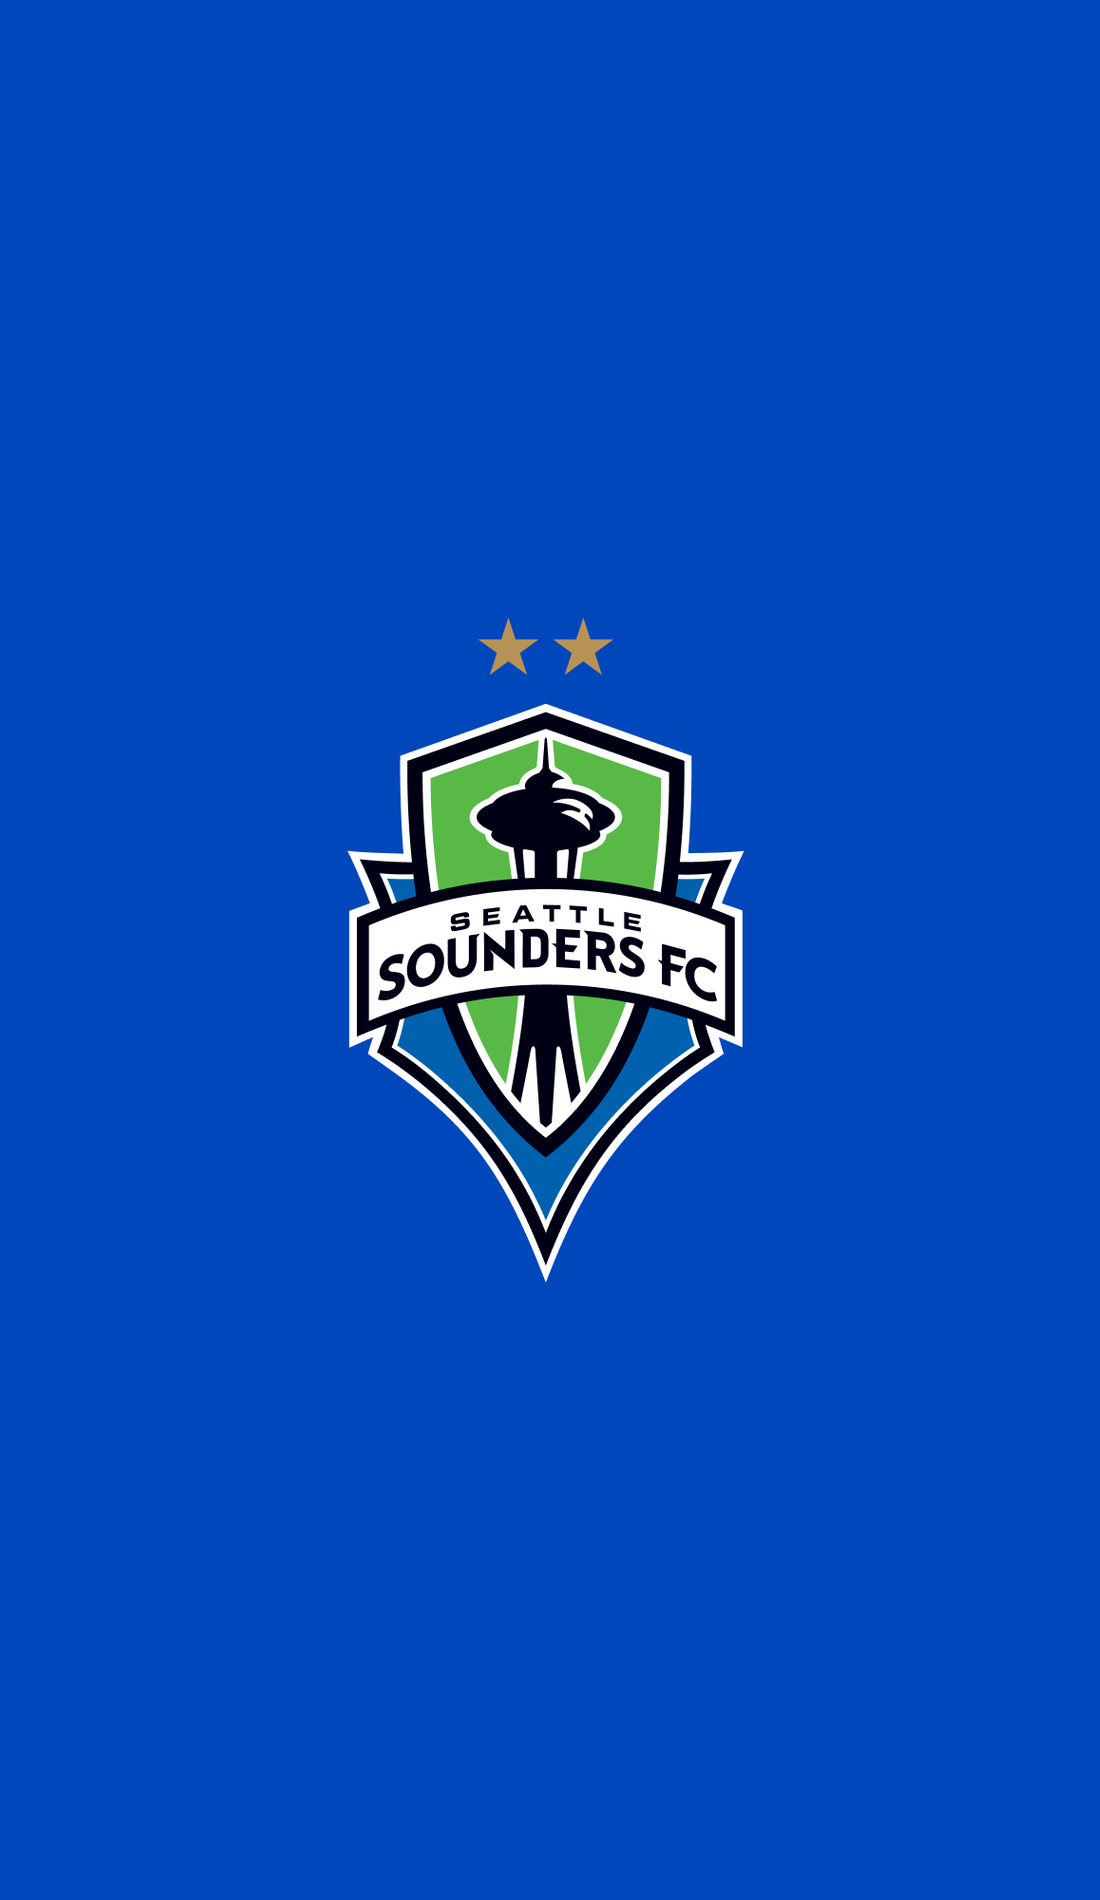 A Seattle Sounders FC live event